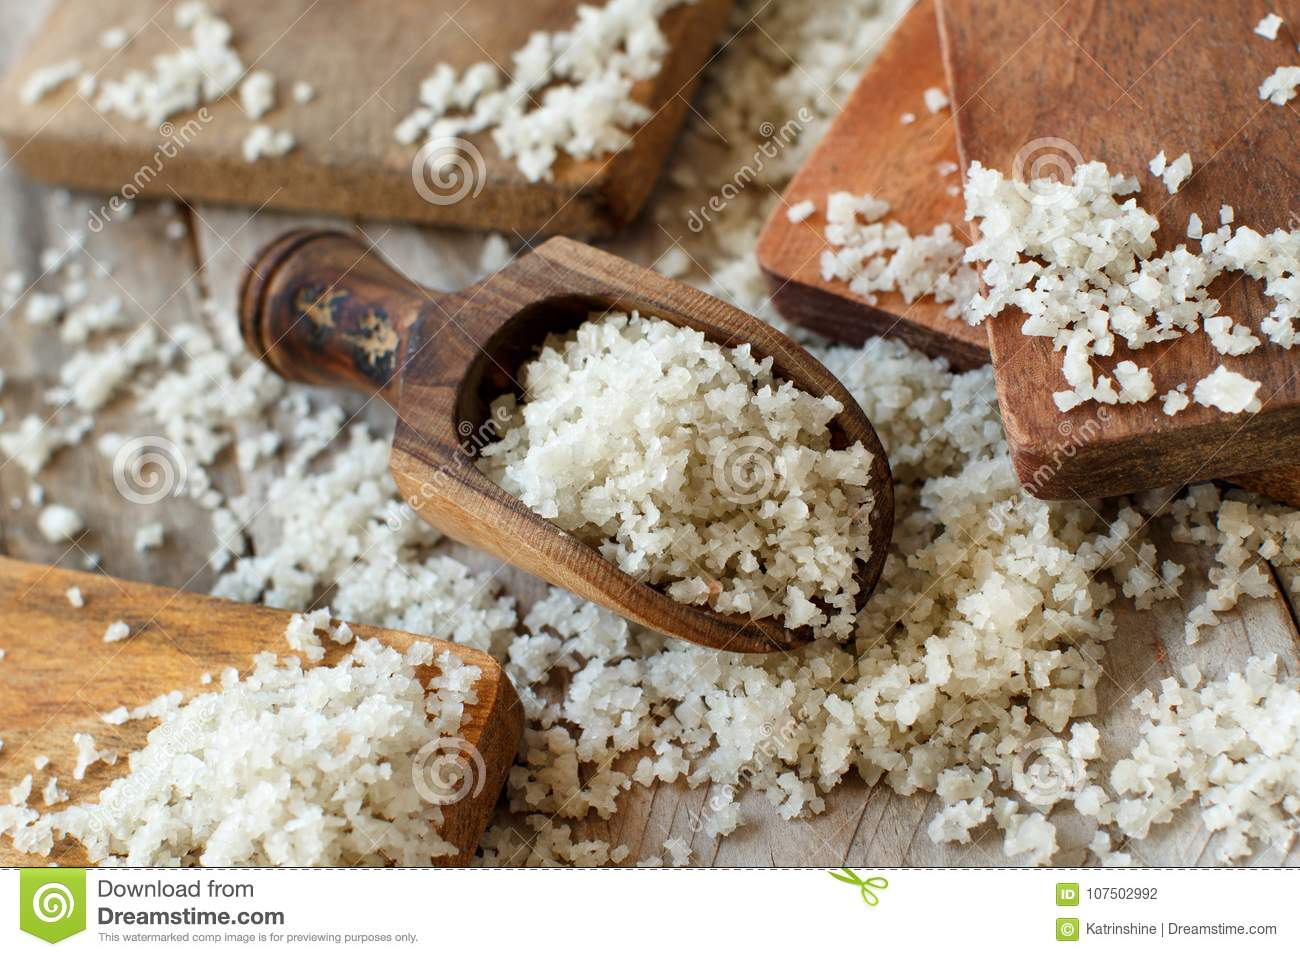 Celtic Grey Sea Salt From France Stock Photo - Image of